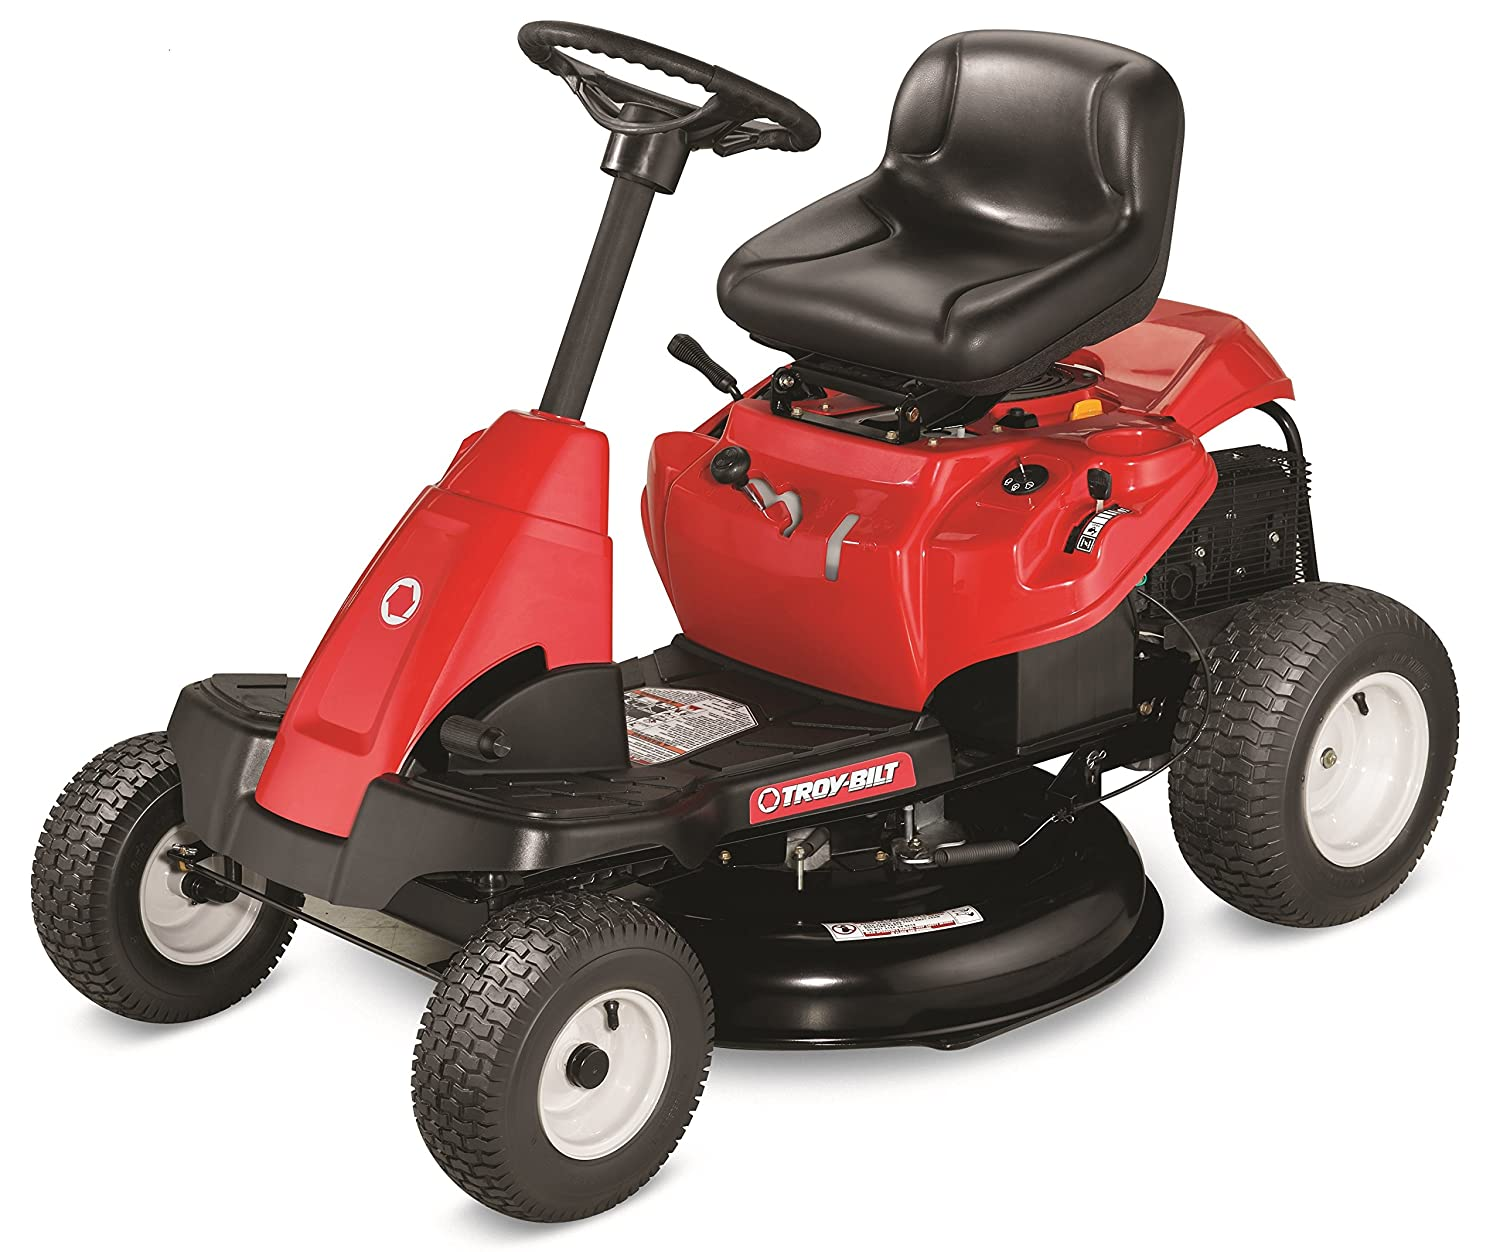 Troy-Bilt's 382cc 30-Inch Premium Neighborhood Riding Lawn Mower